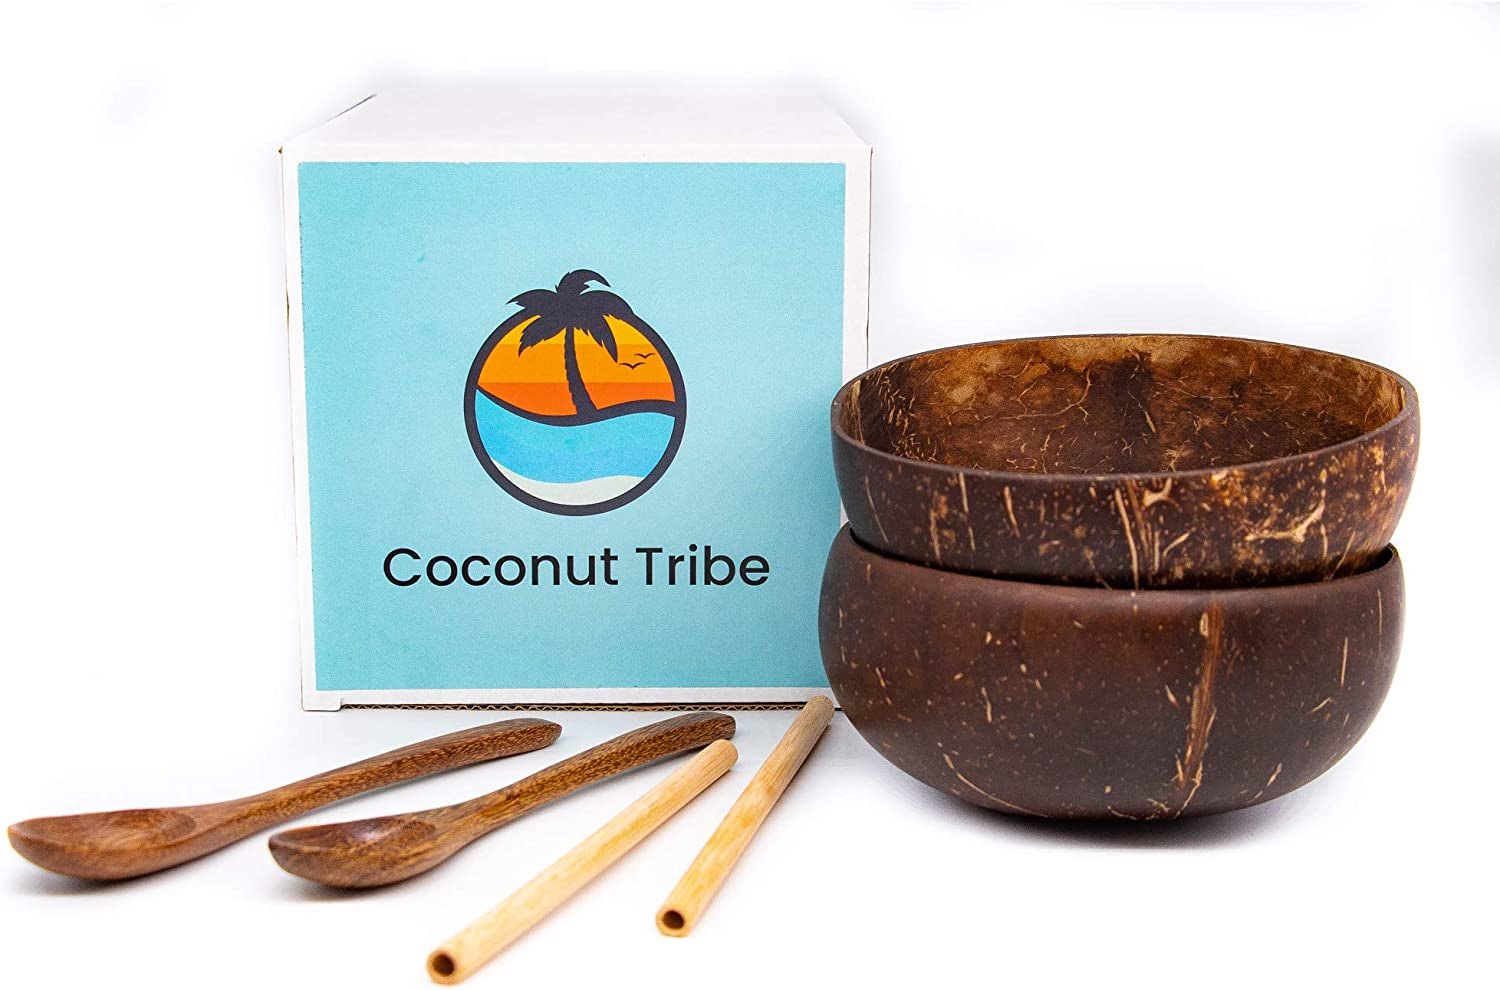 Coconut Finally resale start Bowls Set Free shipping New with 2 and Straws Spoons